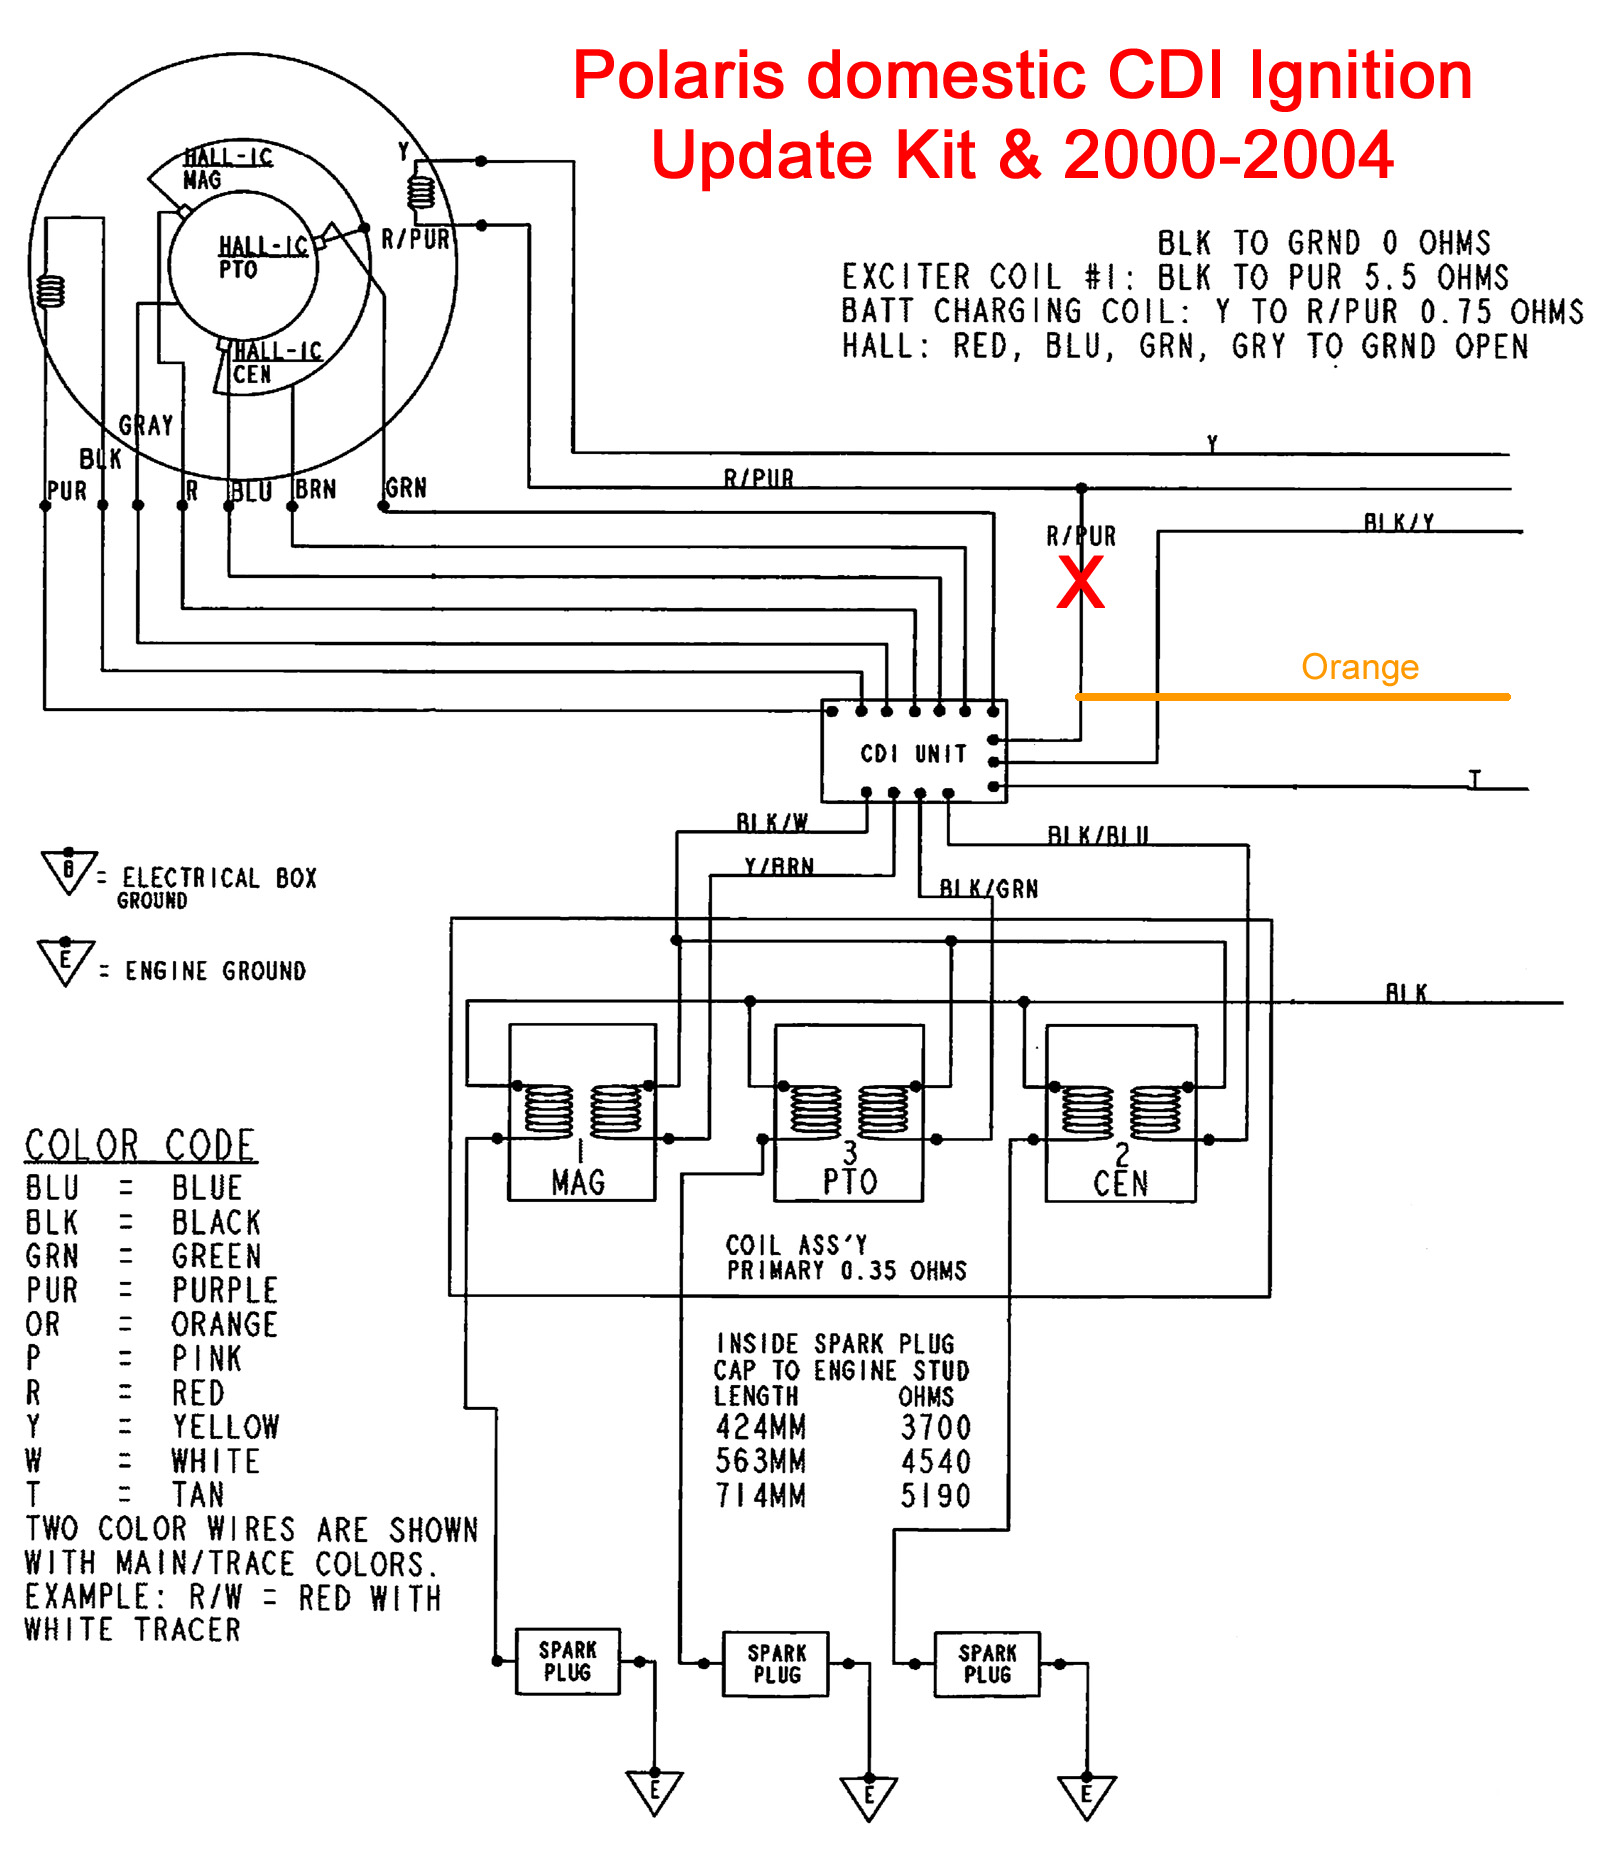 ho wiring diagram wiring diagram for 2008 polaris sportsman 500 the wiring diagram 2004 polaris sportsman 500 ho wiring